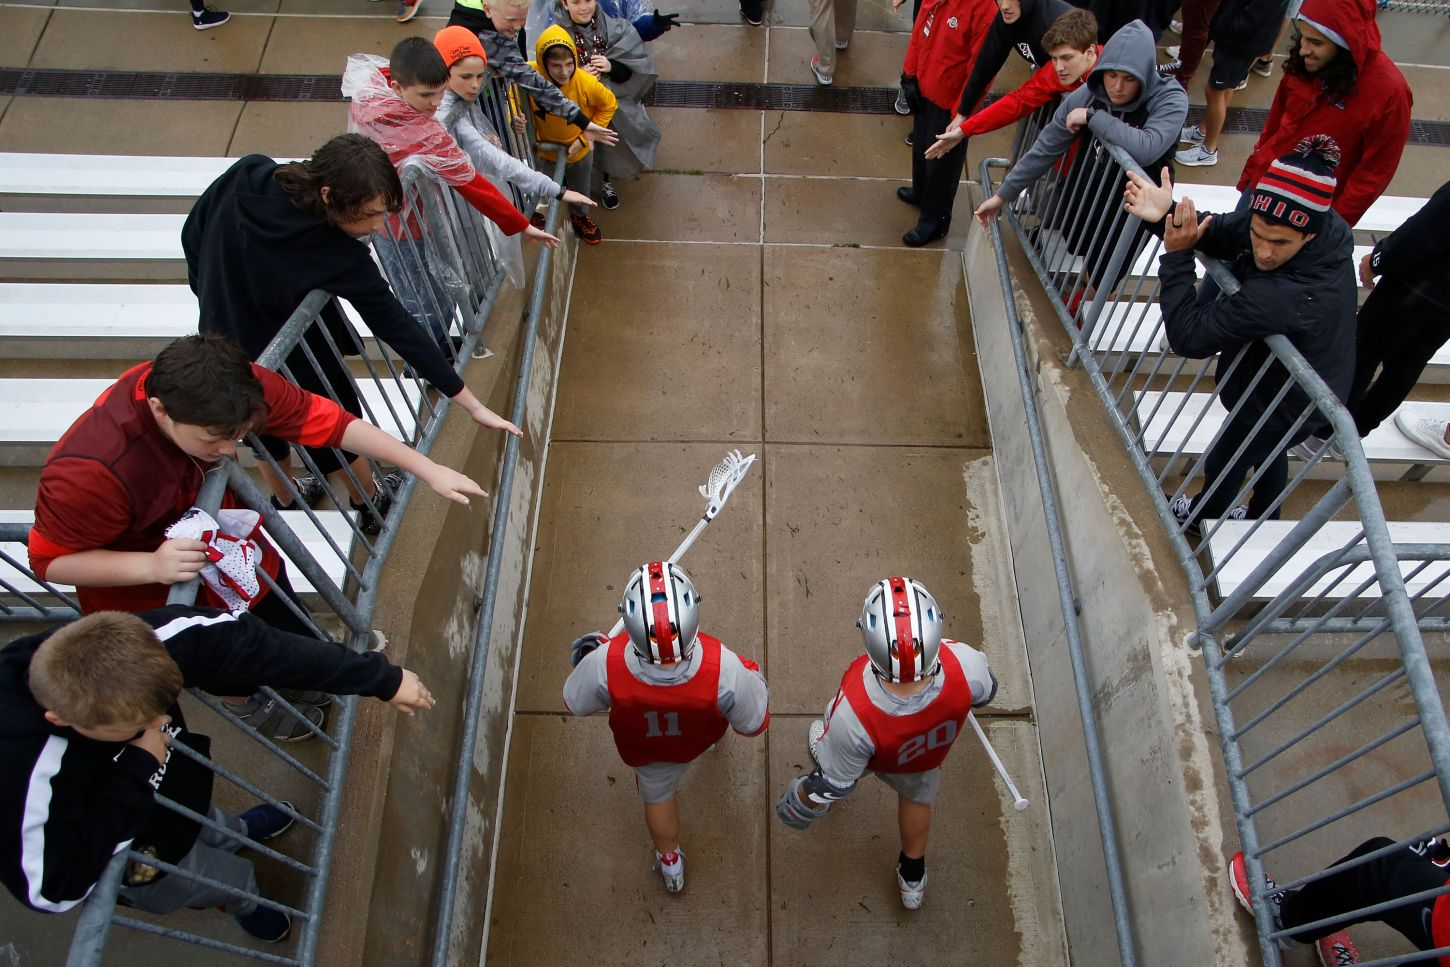 Ohio State defeated Johns Hopkins 15-13 in the Big 10 Men's Lacrosse semifinals at Jesse Owens Memorial Stadium on Thursday, May 4, 2017 in Columbus, Ohio.